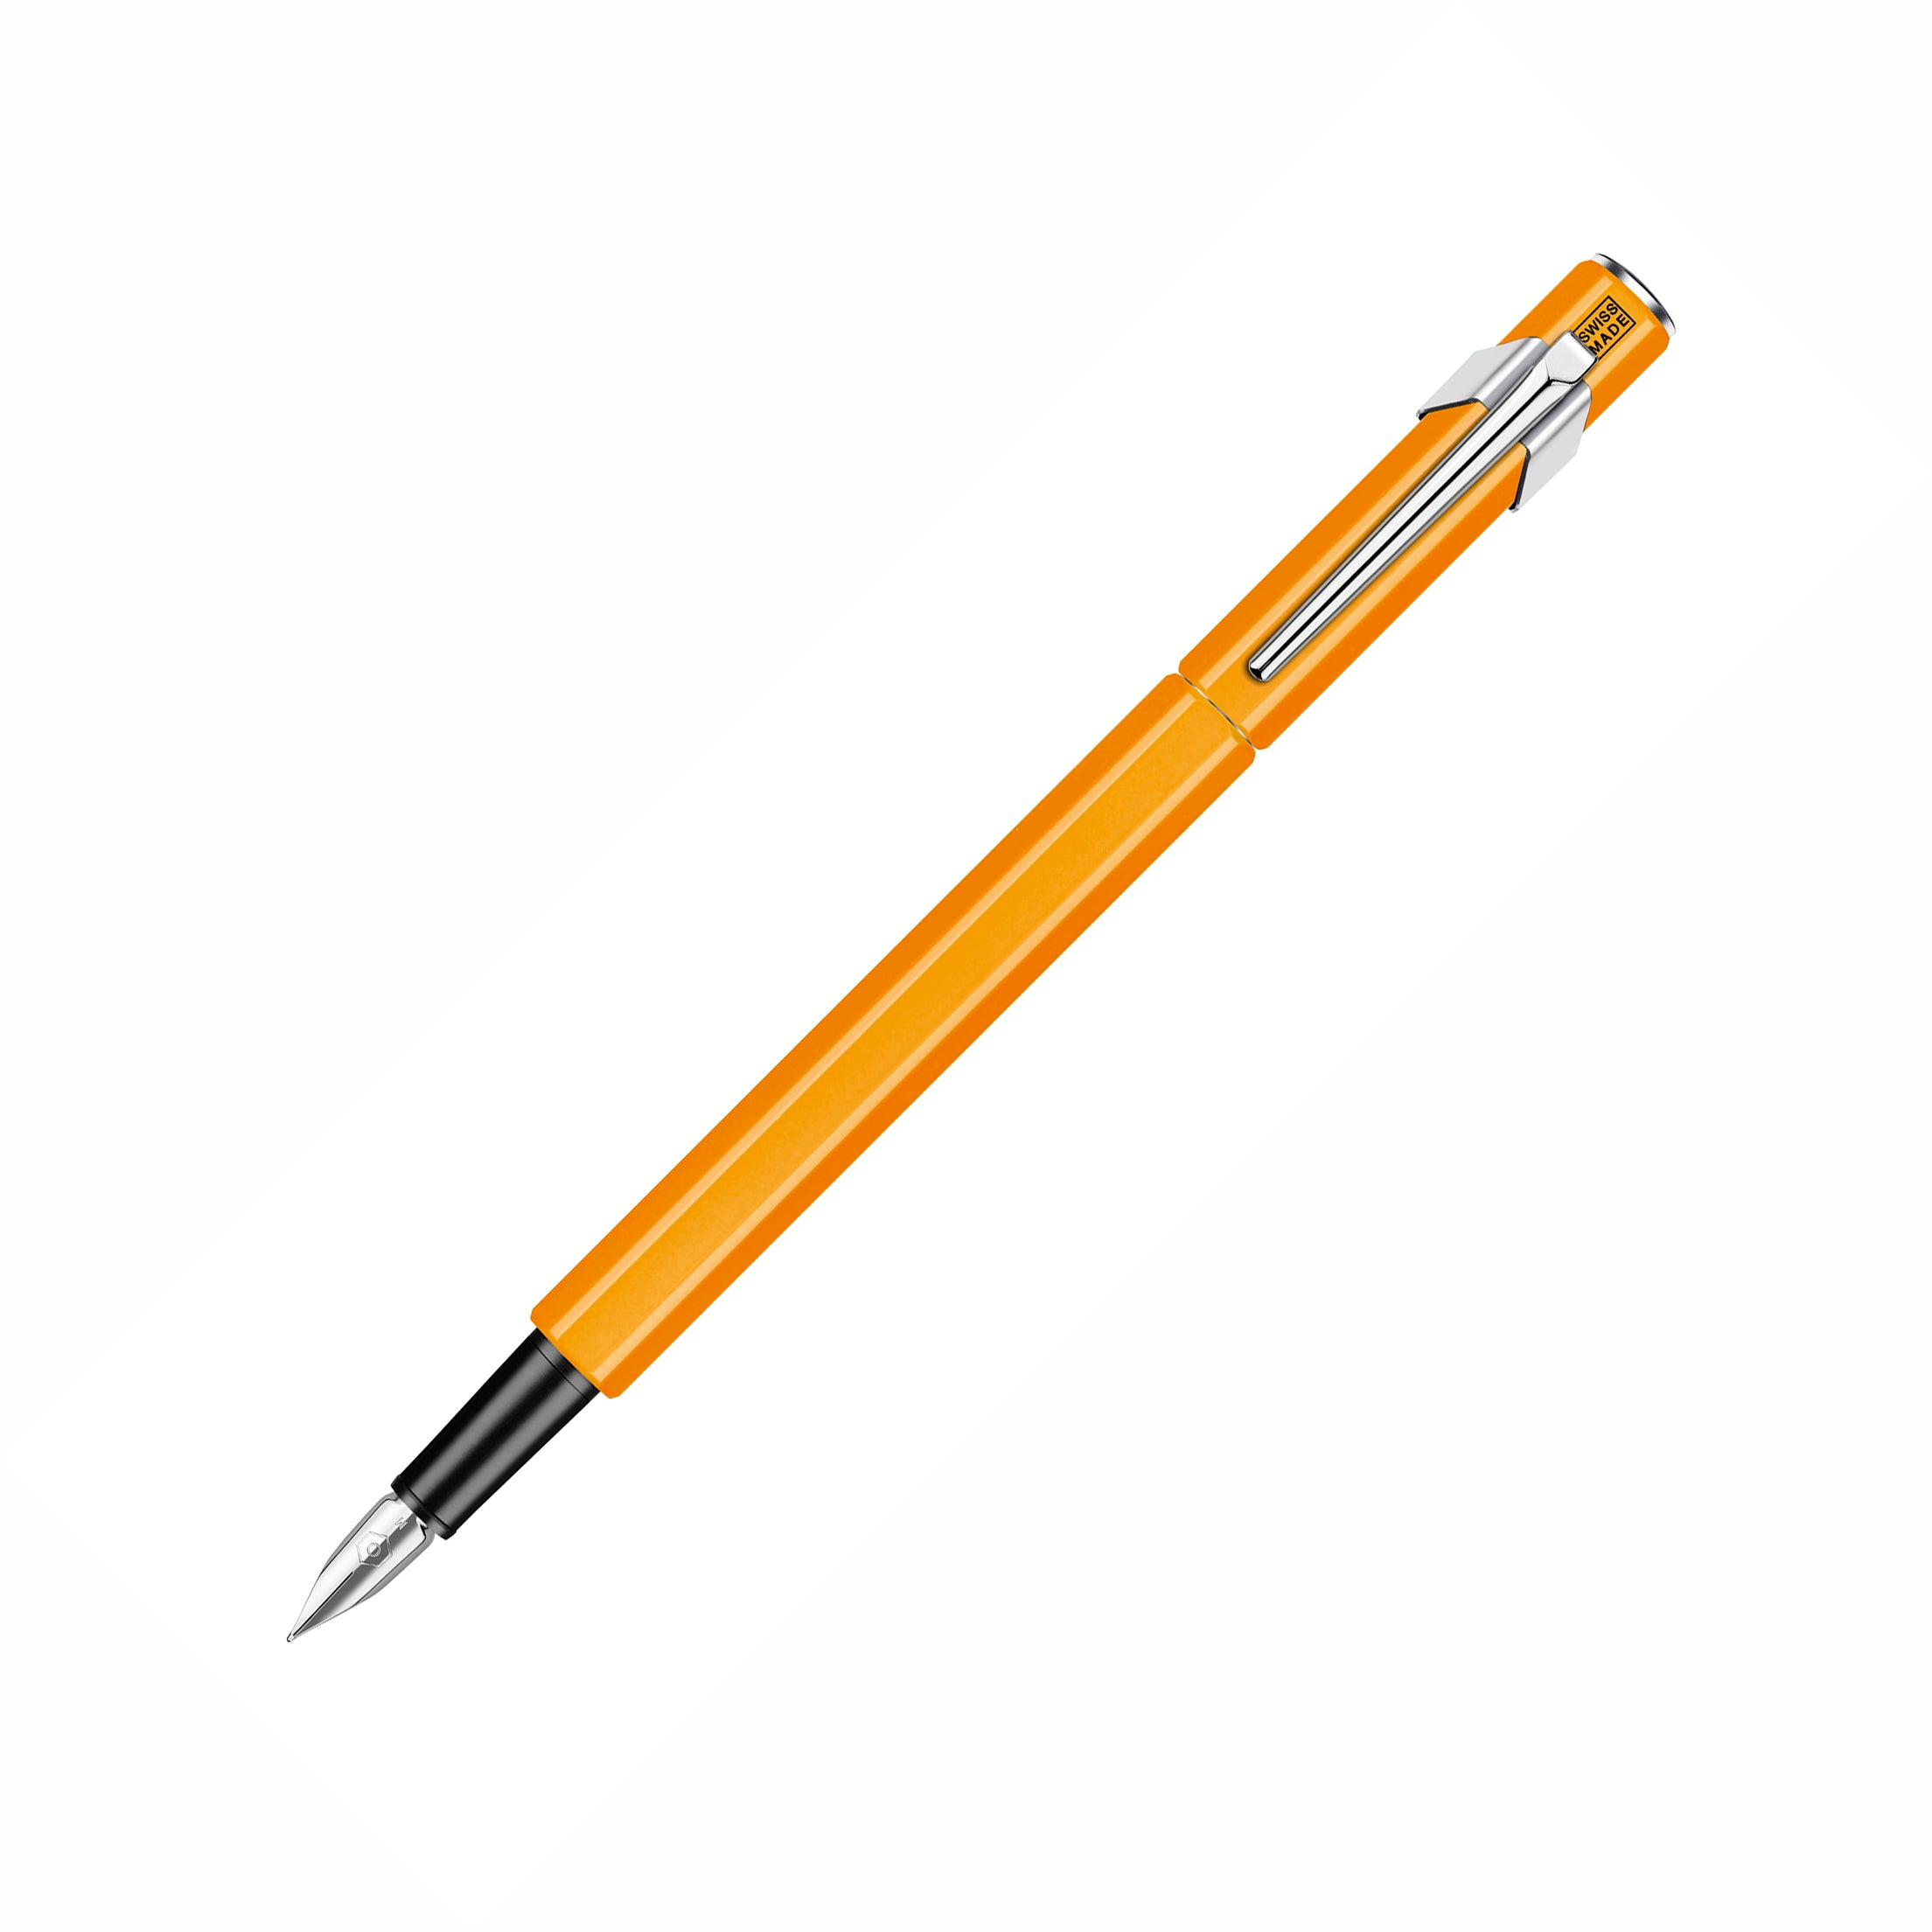 849 Fountain Pen - Medium Nib / Orange